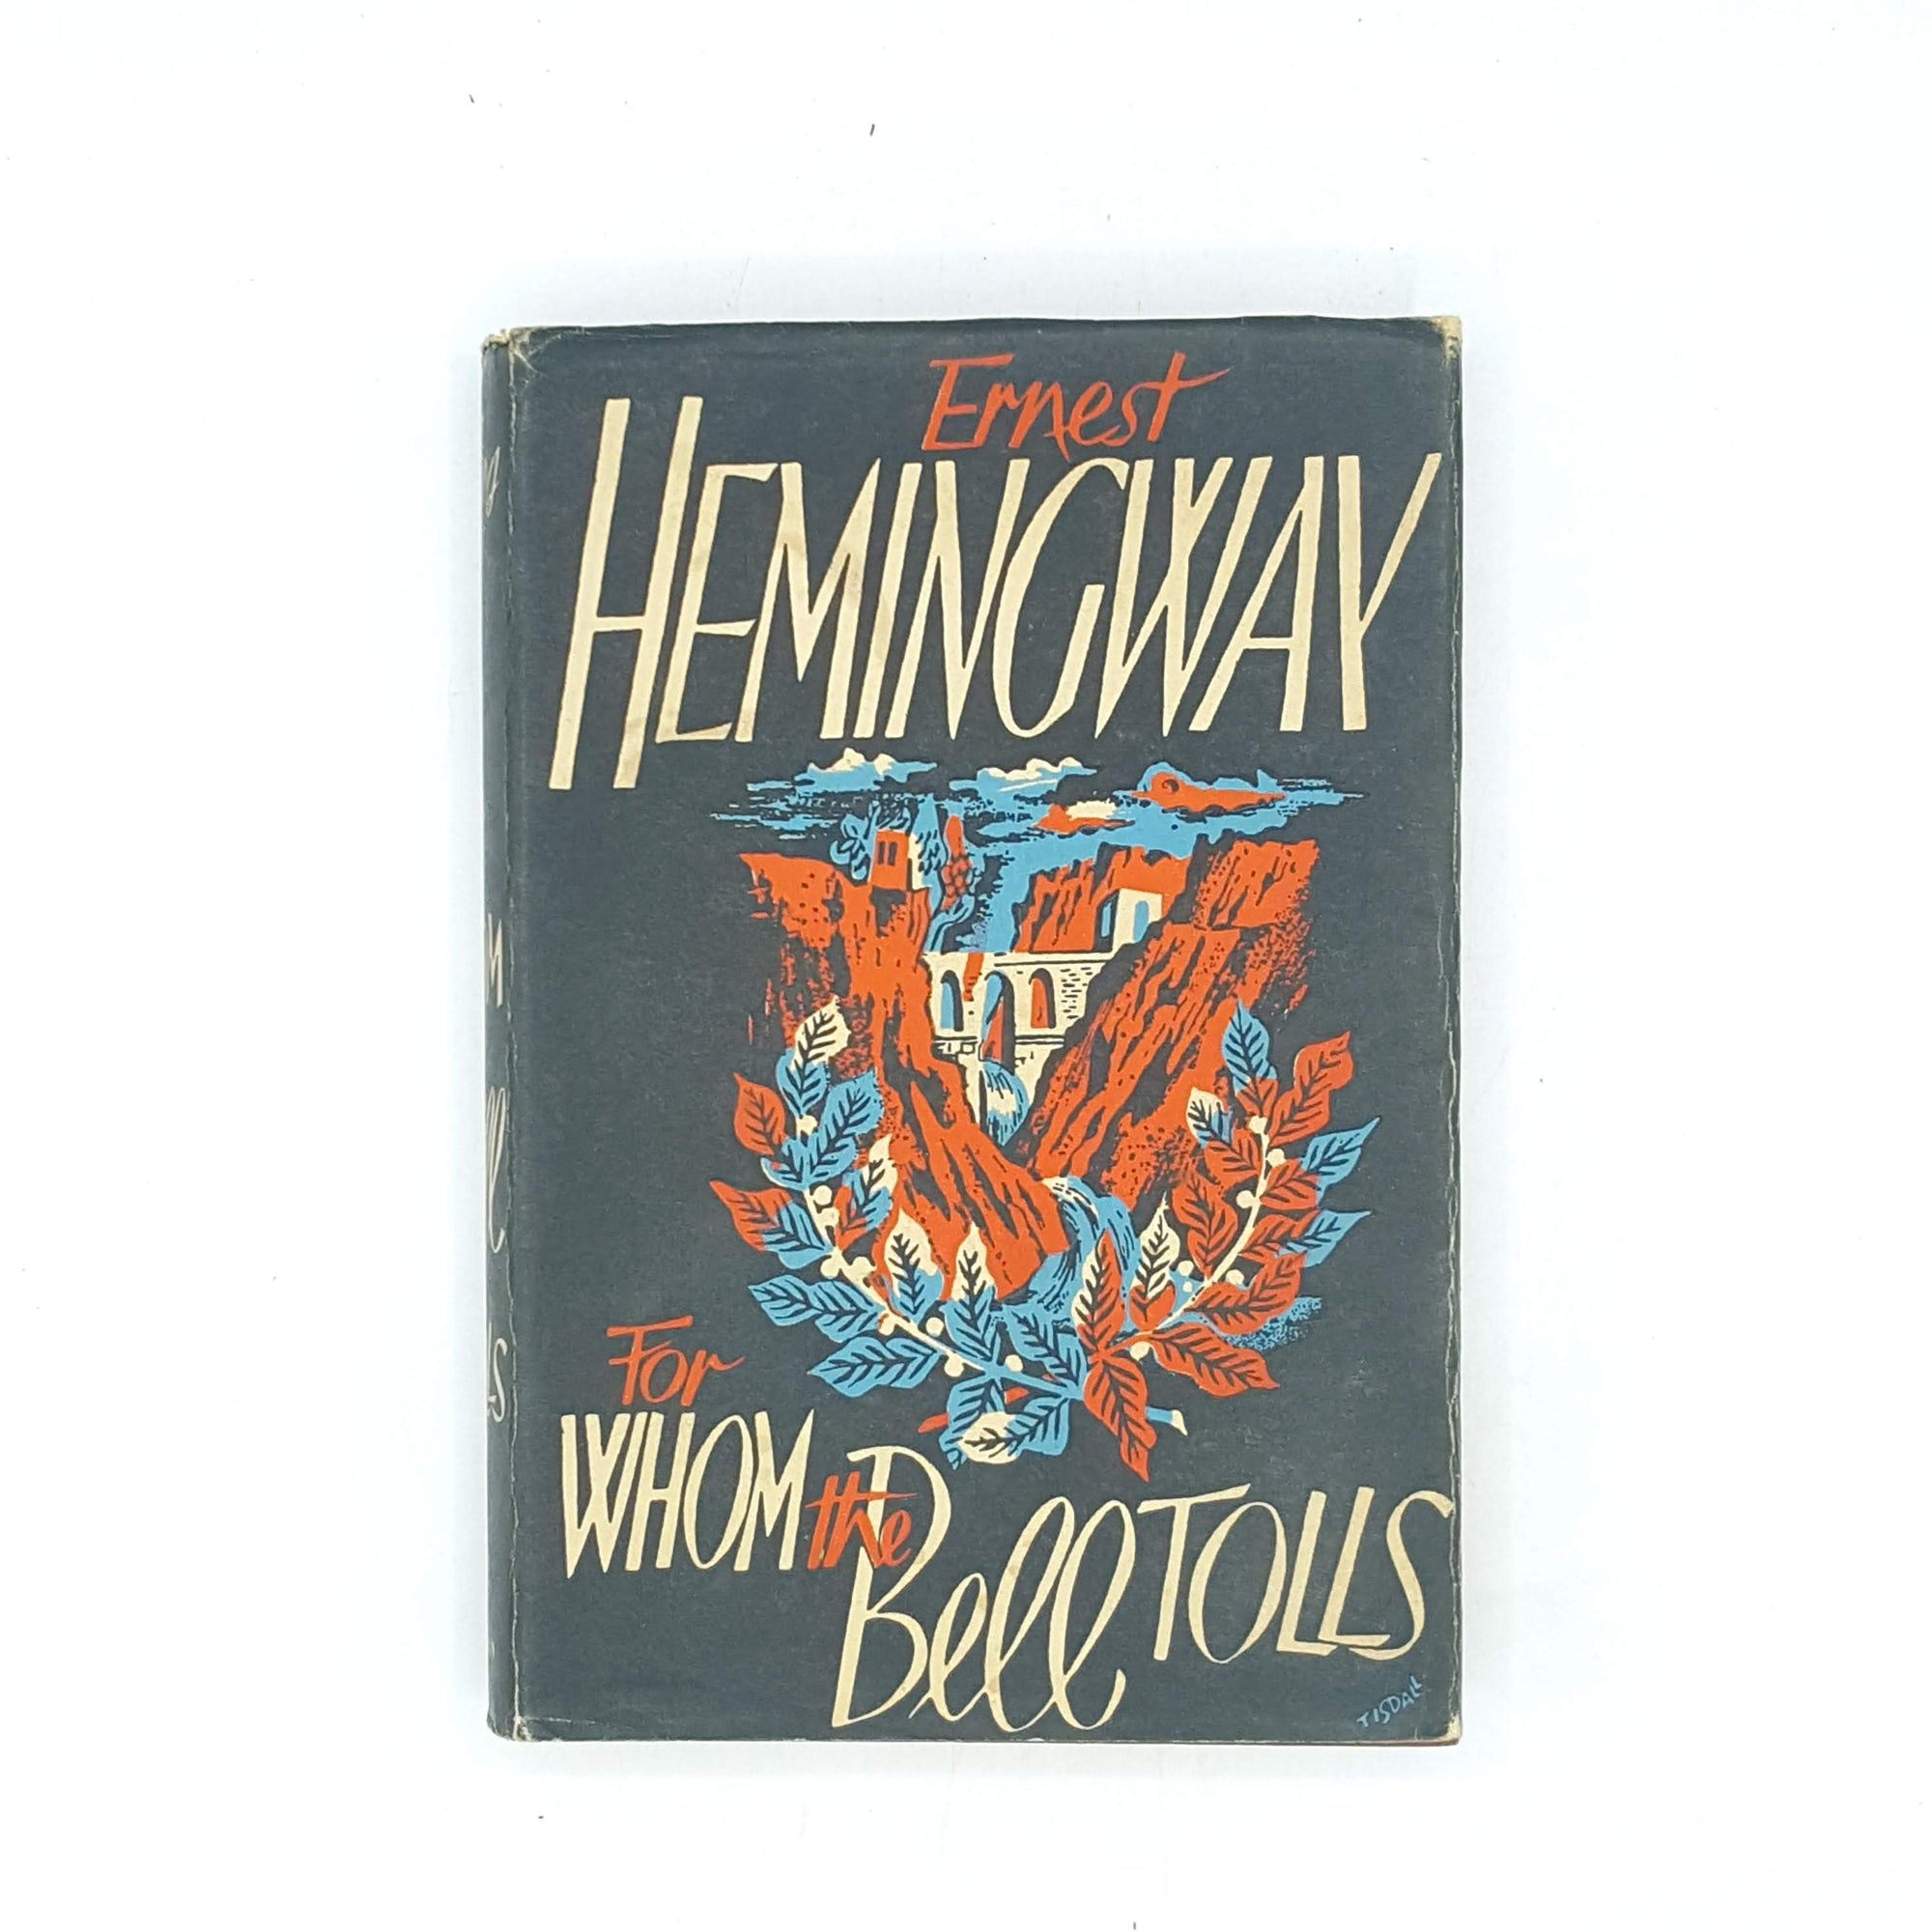 classic-antique-vintage-decorative-country-house-library-for-whom-the-bell-tolls-old-thrift-patterned-jonathan-cape-1954-ernest-hemingway-black-books-